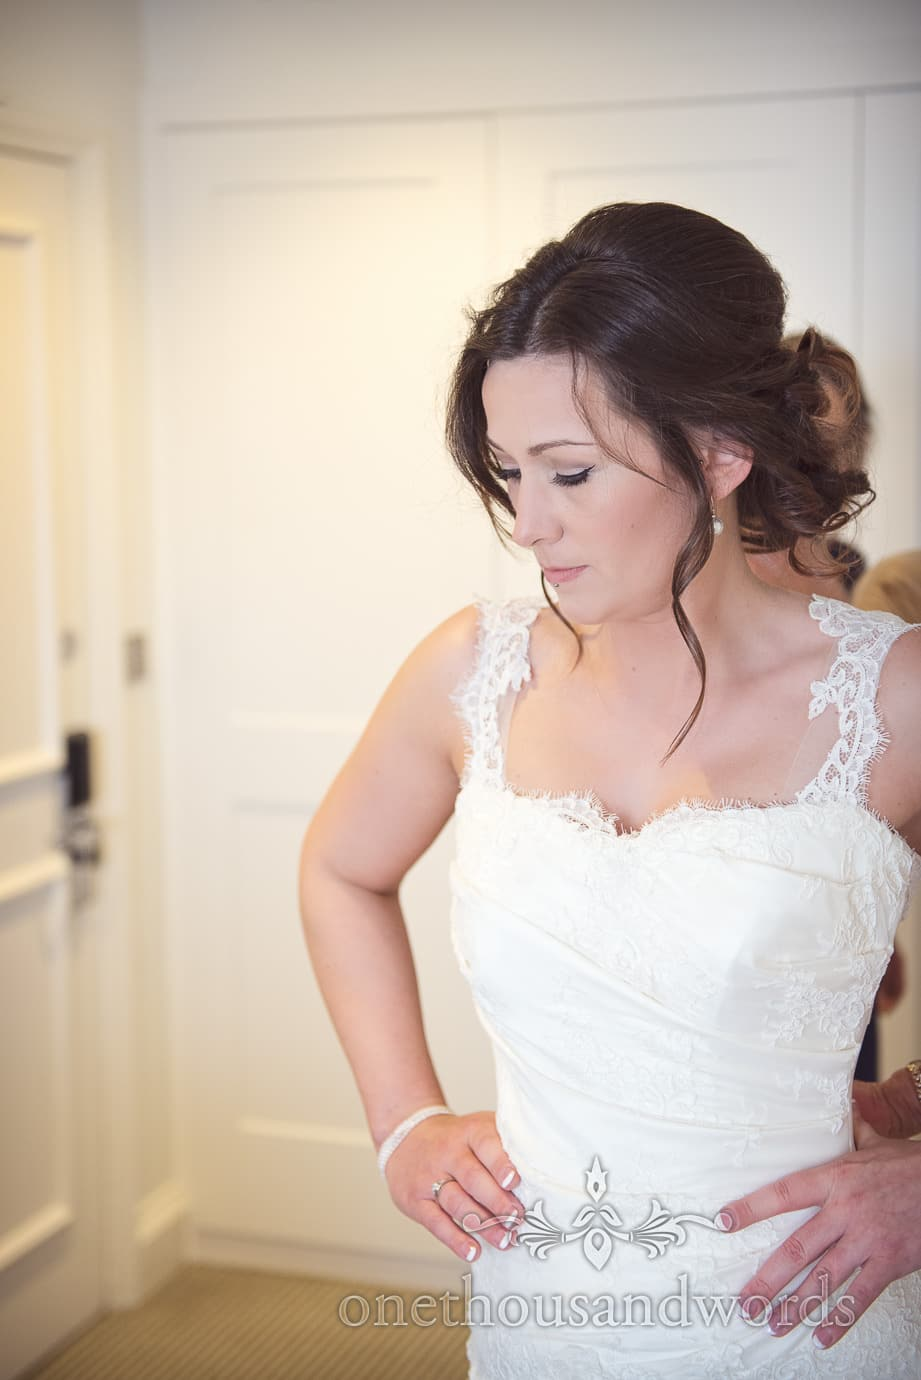 Calm bride portrait photograph as she is laced into wedding dress on wedding morning